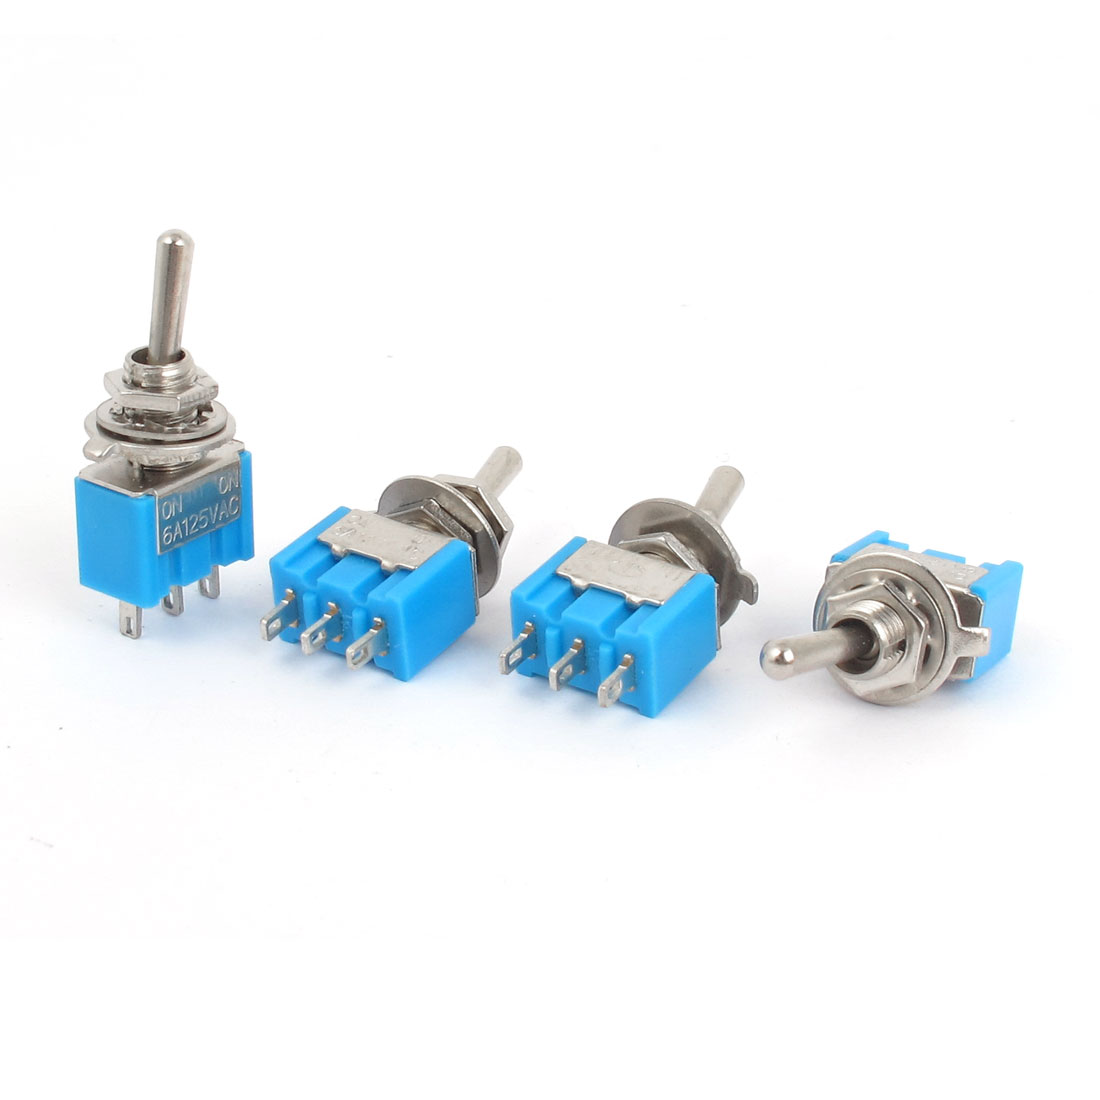 AC 125V 6A SPDT 3 Pin ON-OFF 2 Positions Locking Rocker Toggle Switch 4pcs Blue